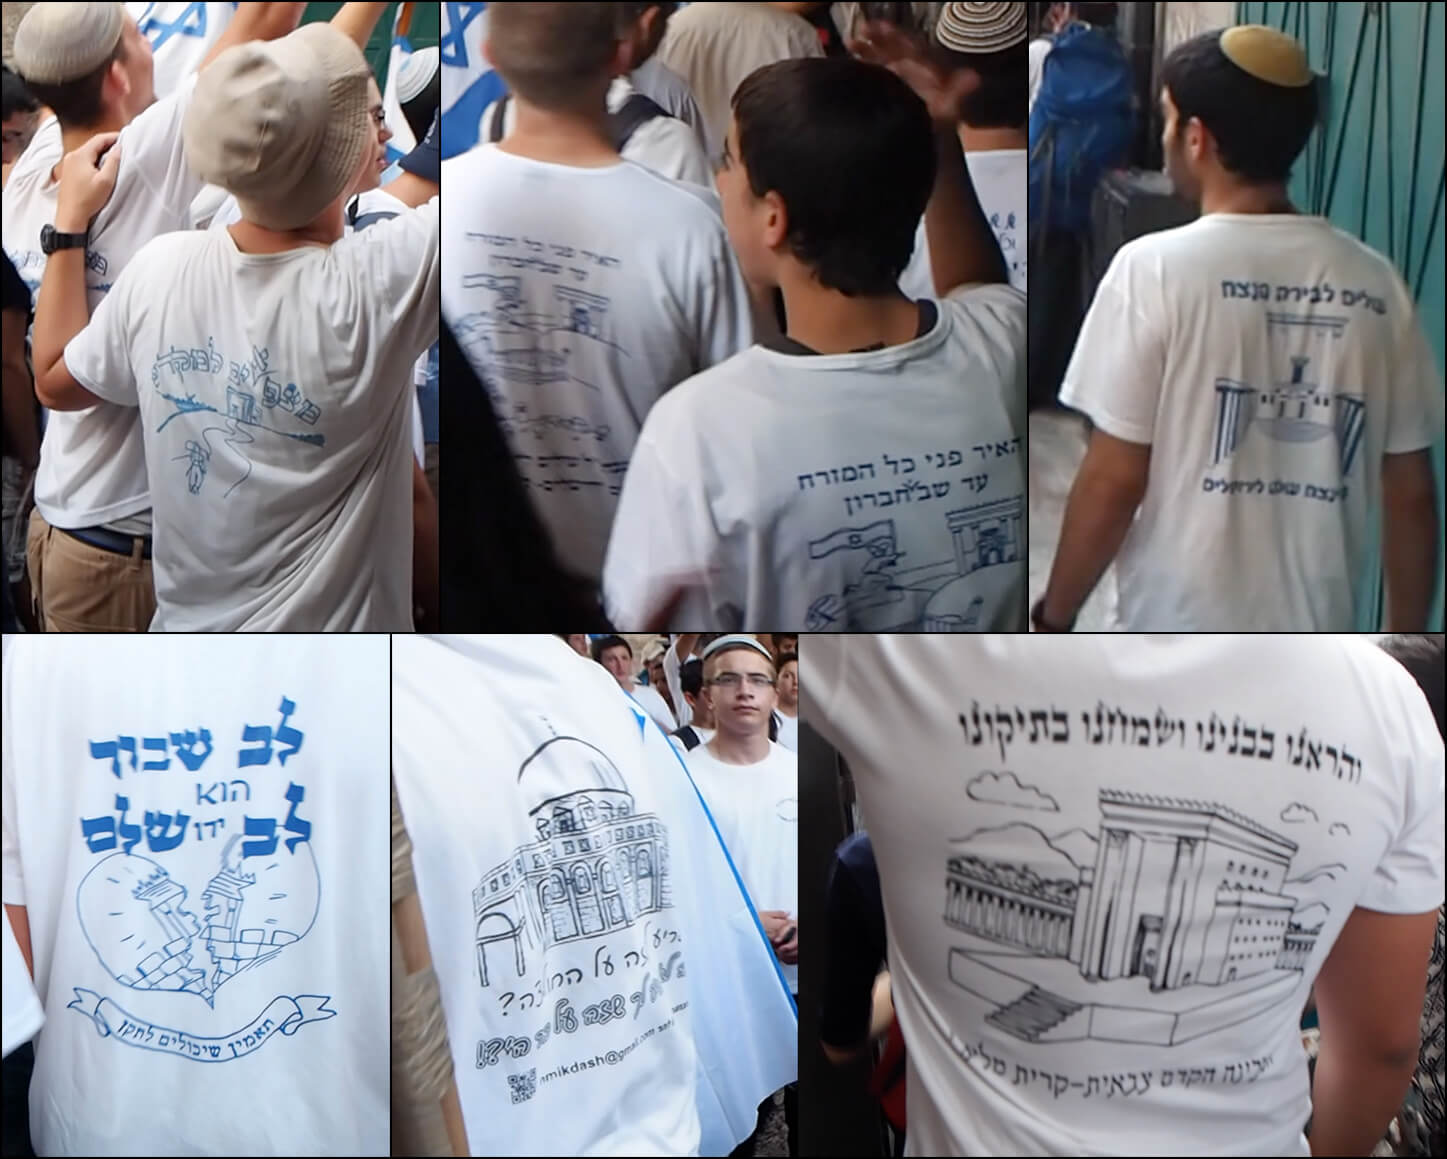 Some of the t-shirts worn by flag march participants calling for the elimination of the Dome ofa the Rock and the construction of a Jewish temple on the al-Aqsa compound